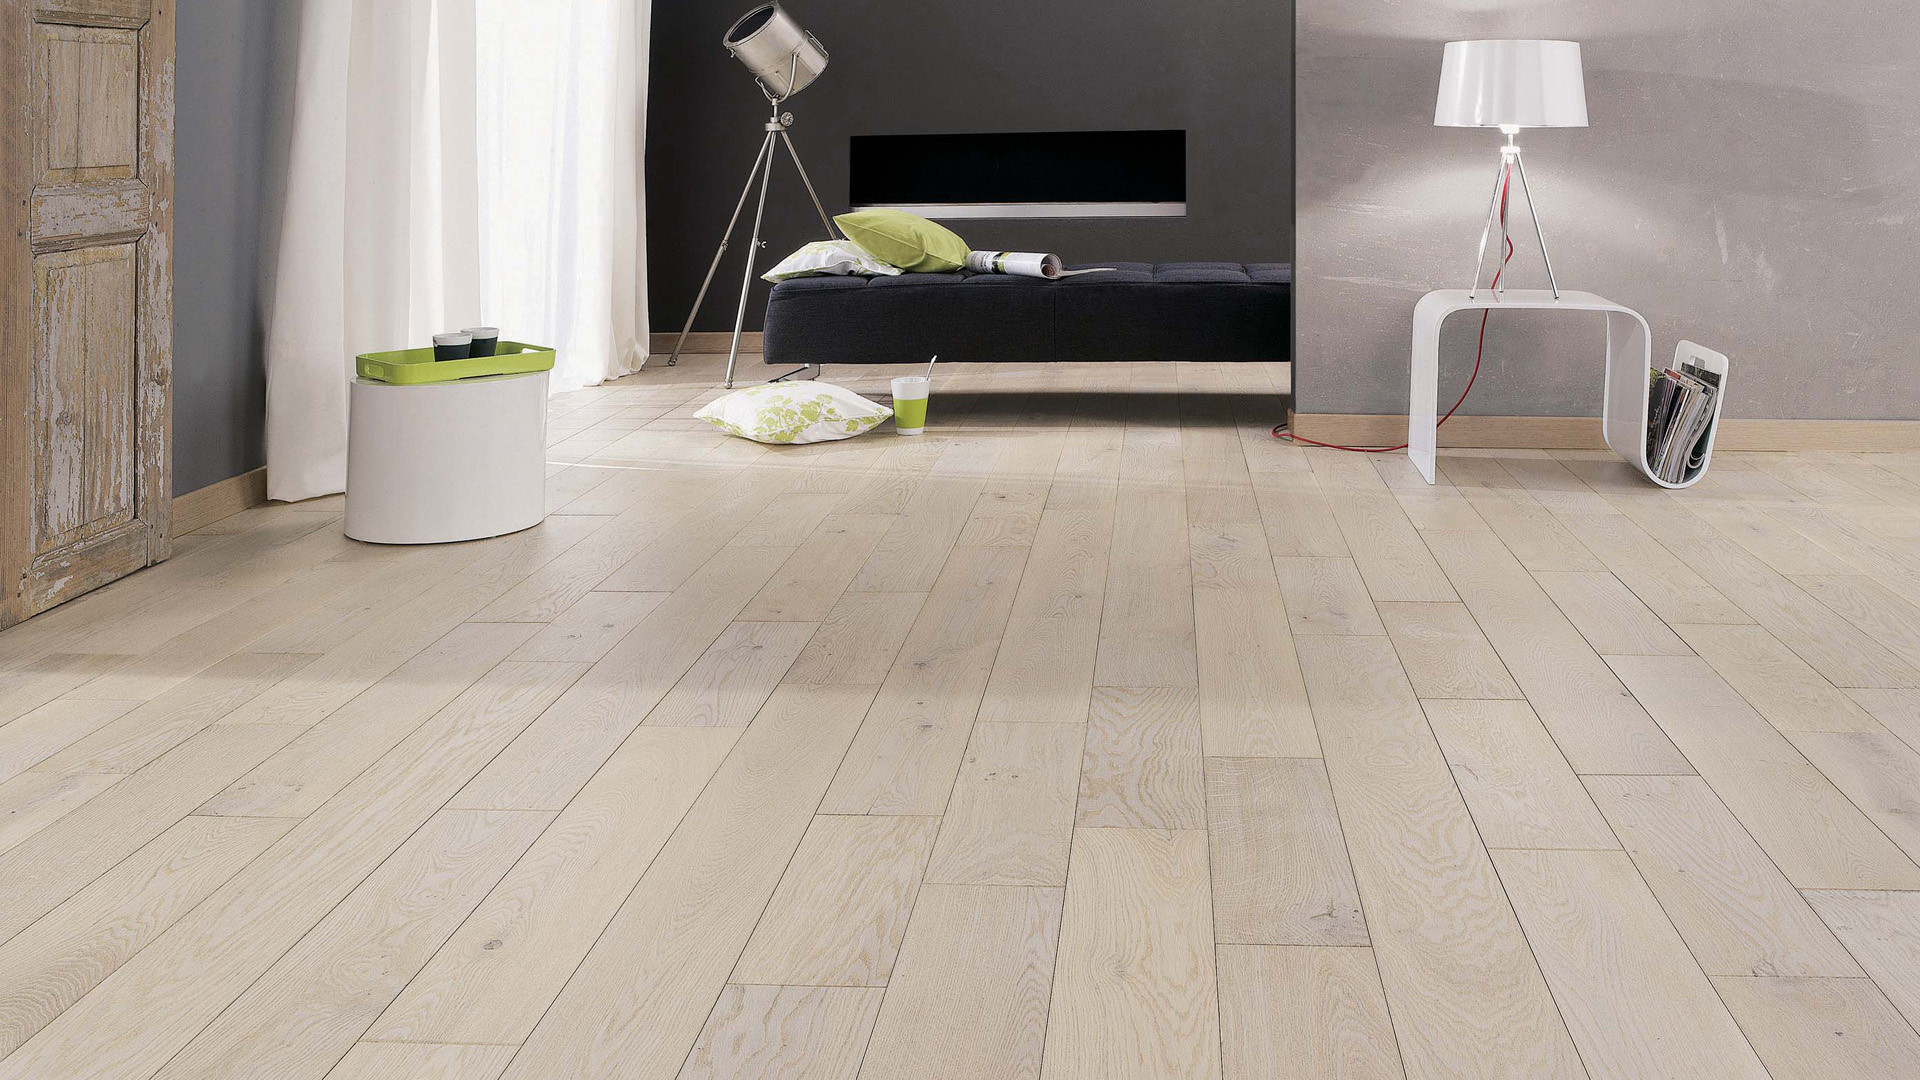 Parquet ch ne authentique saphir sonate 140 - Parket massief cuisine ...